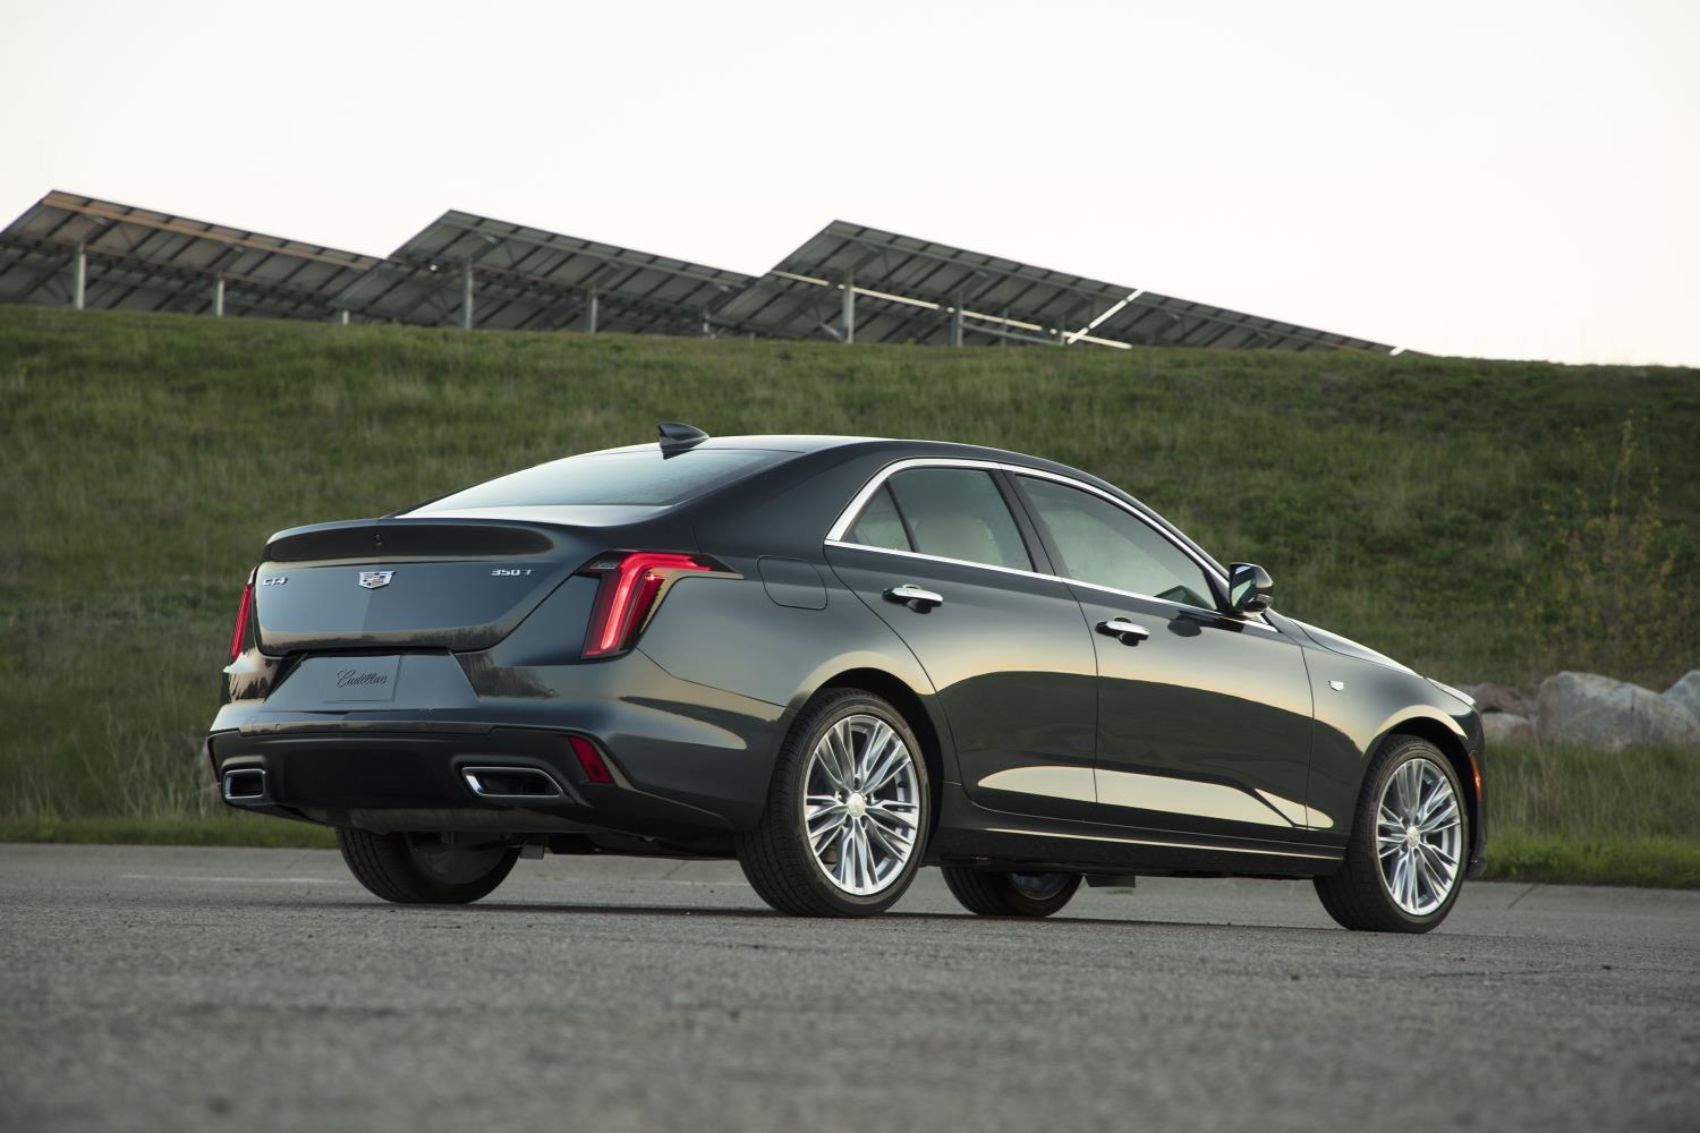 2020 Cadillac CT4: Reviving The American Sports Sedan